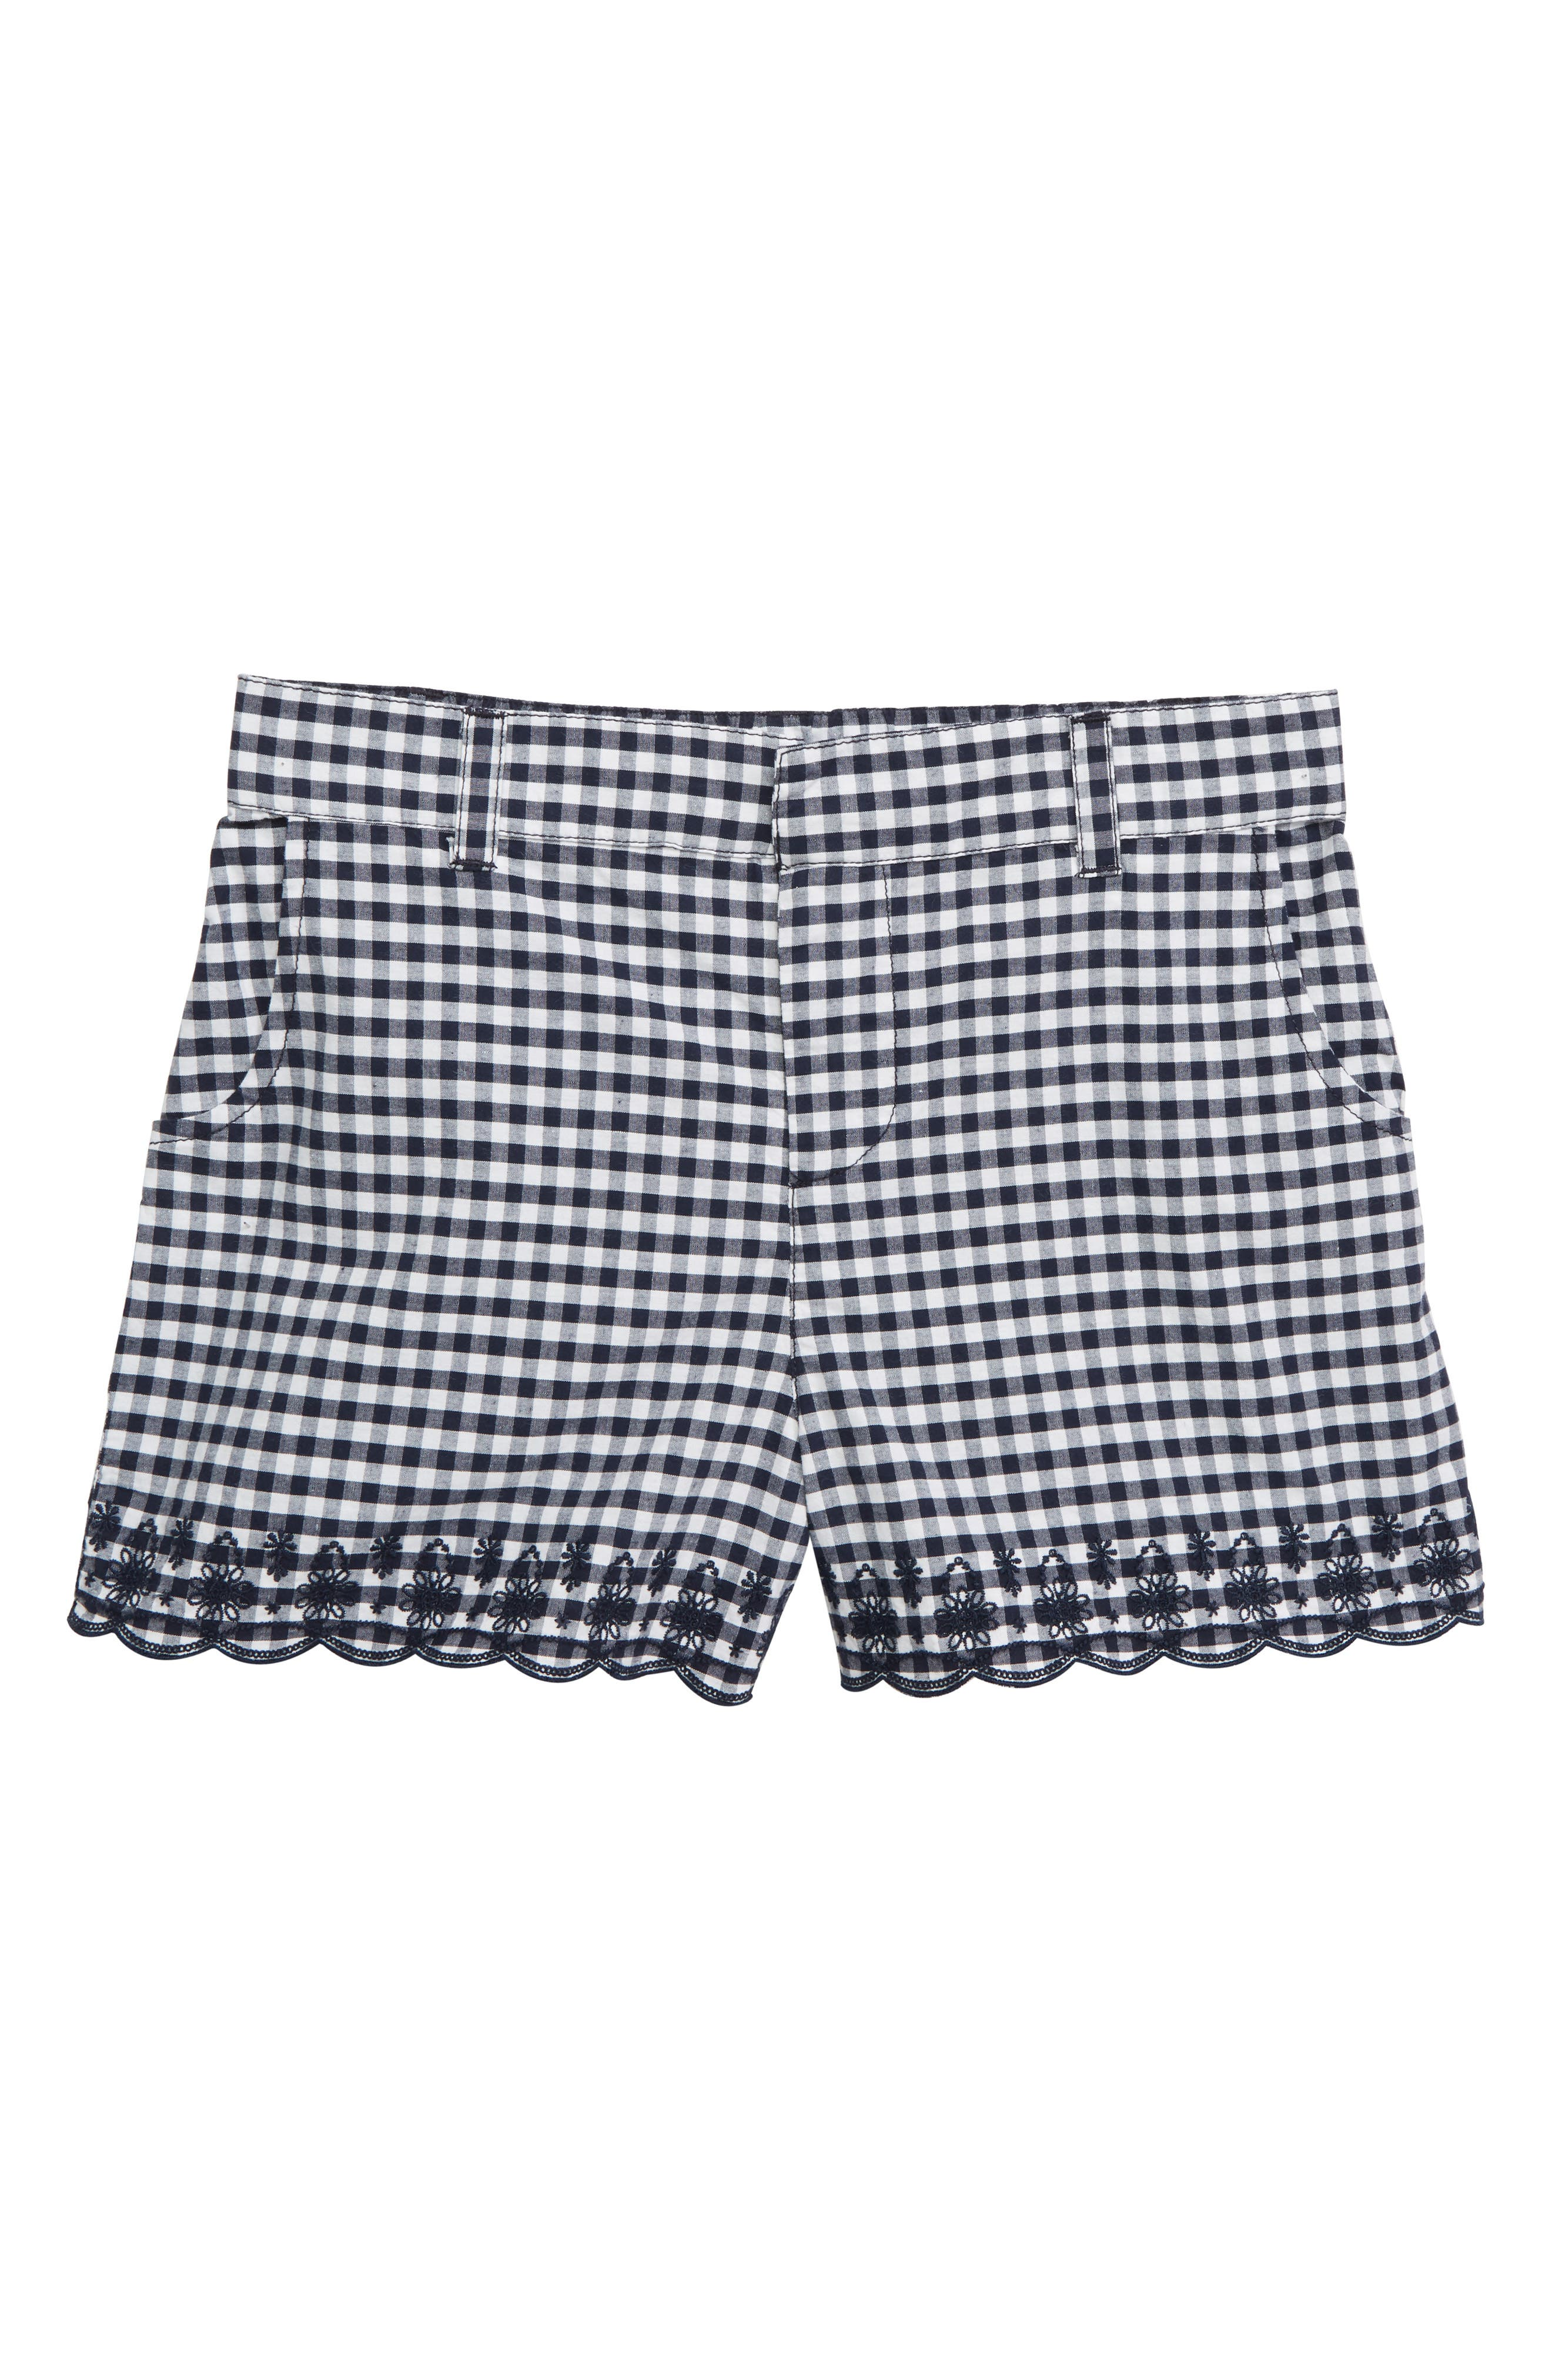 Embroidered Gingham Shorts, Main, color, NAVY PEACOAT GINGHAM